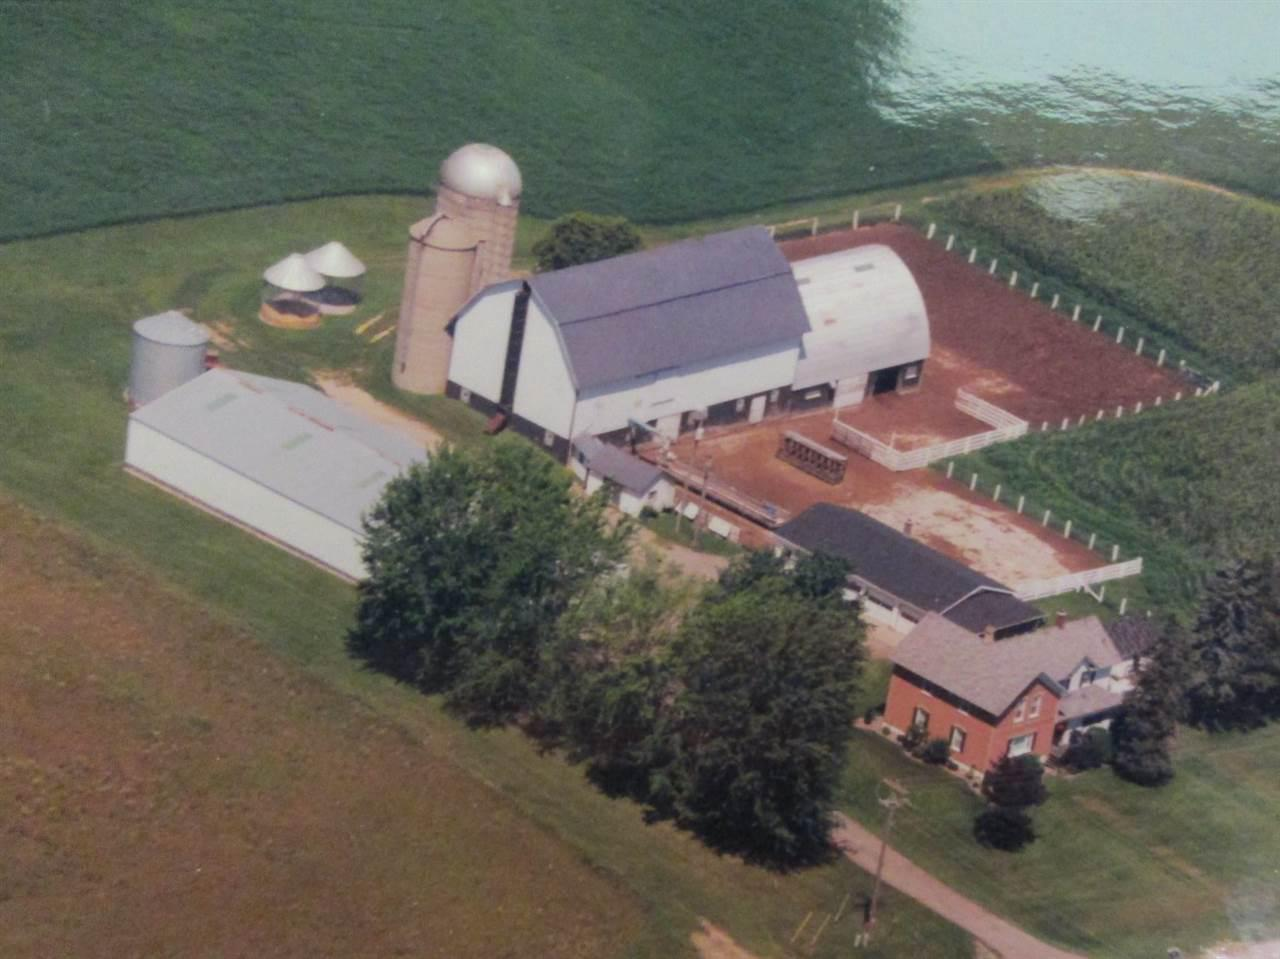 Rare find -  Large 5 bedroom country home, with 10' x 11' sitting room and a finished basement.  45' x 112' steel pole building, 40' x 80' barn with 40' x 50' addition, 2 corn cribs, grain bin, 2 silos, milk house, tool shed, 36' x 52' four-car garage, with 10' x 26' screened patio.  73 acres available,  great opportunity to live where you have a business, or farm it.  Property will not be divided at this time.